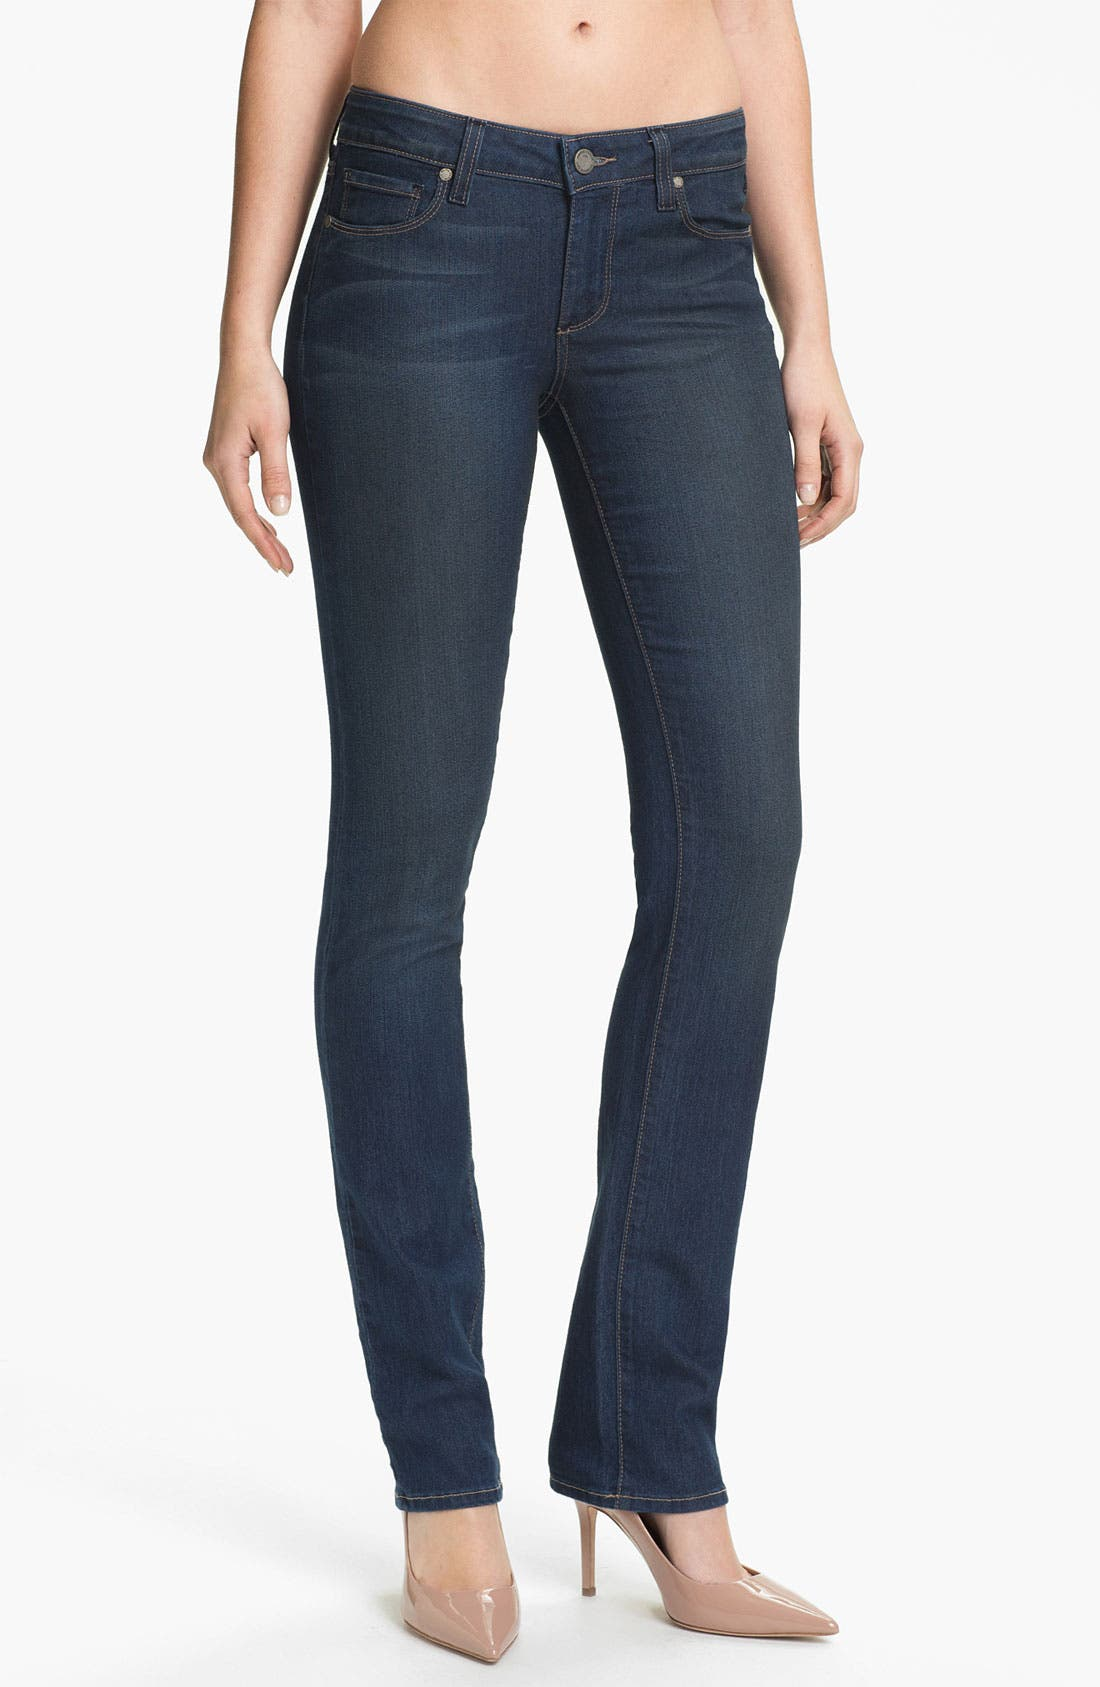 Alternate Image 1 Selected - Paige Denim 'Skyline' Straight Leg Stretch Denim Jeans (Finley)